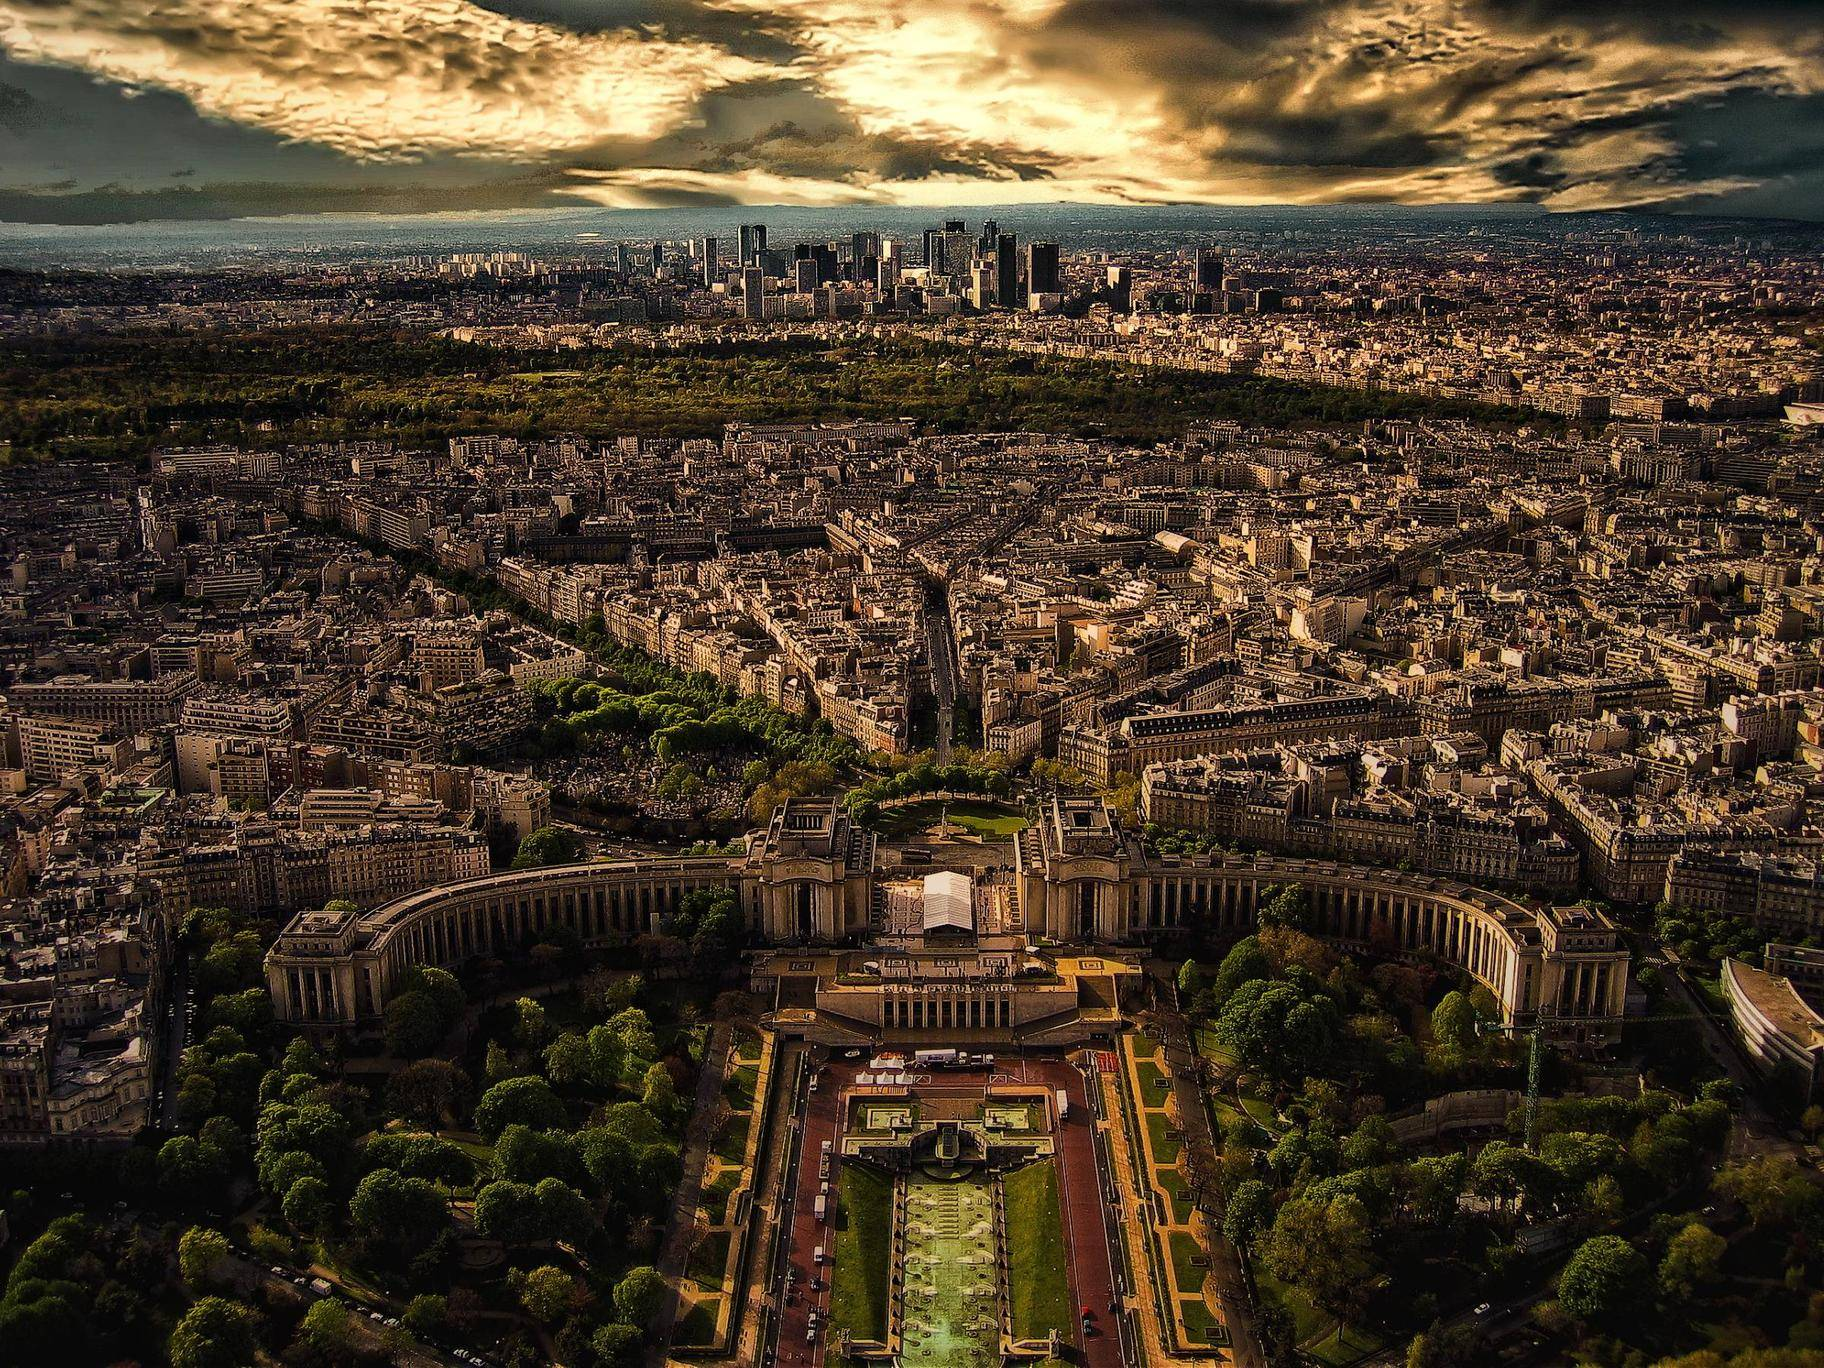 dj9ld5f1 30 Beautiful Photographs of Cities from Around the World